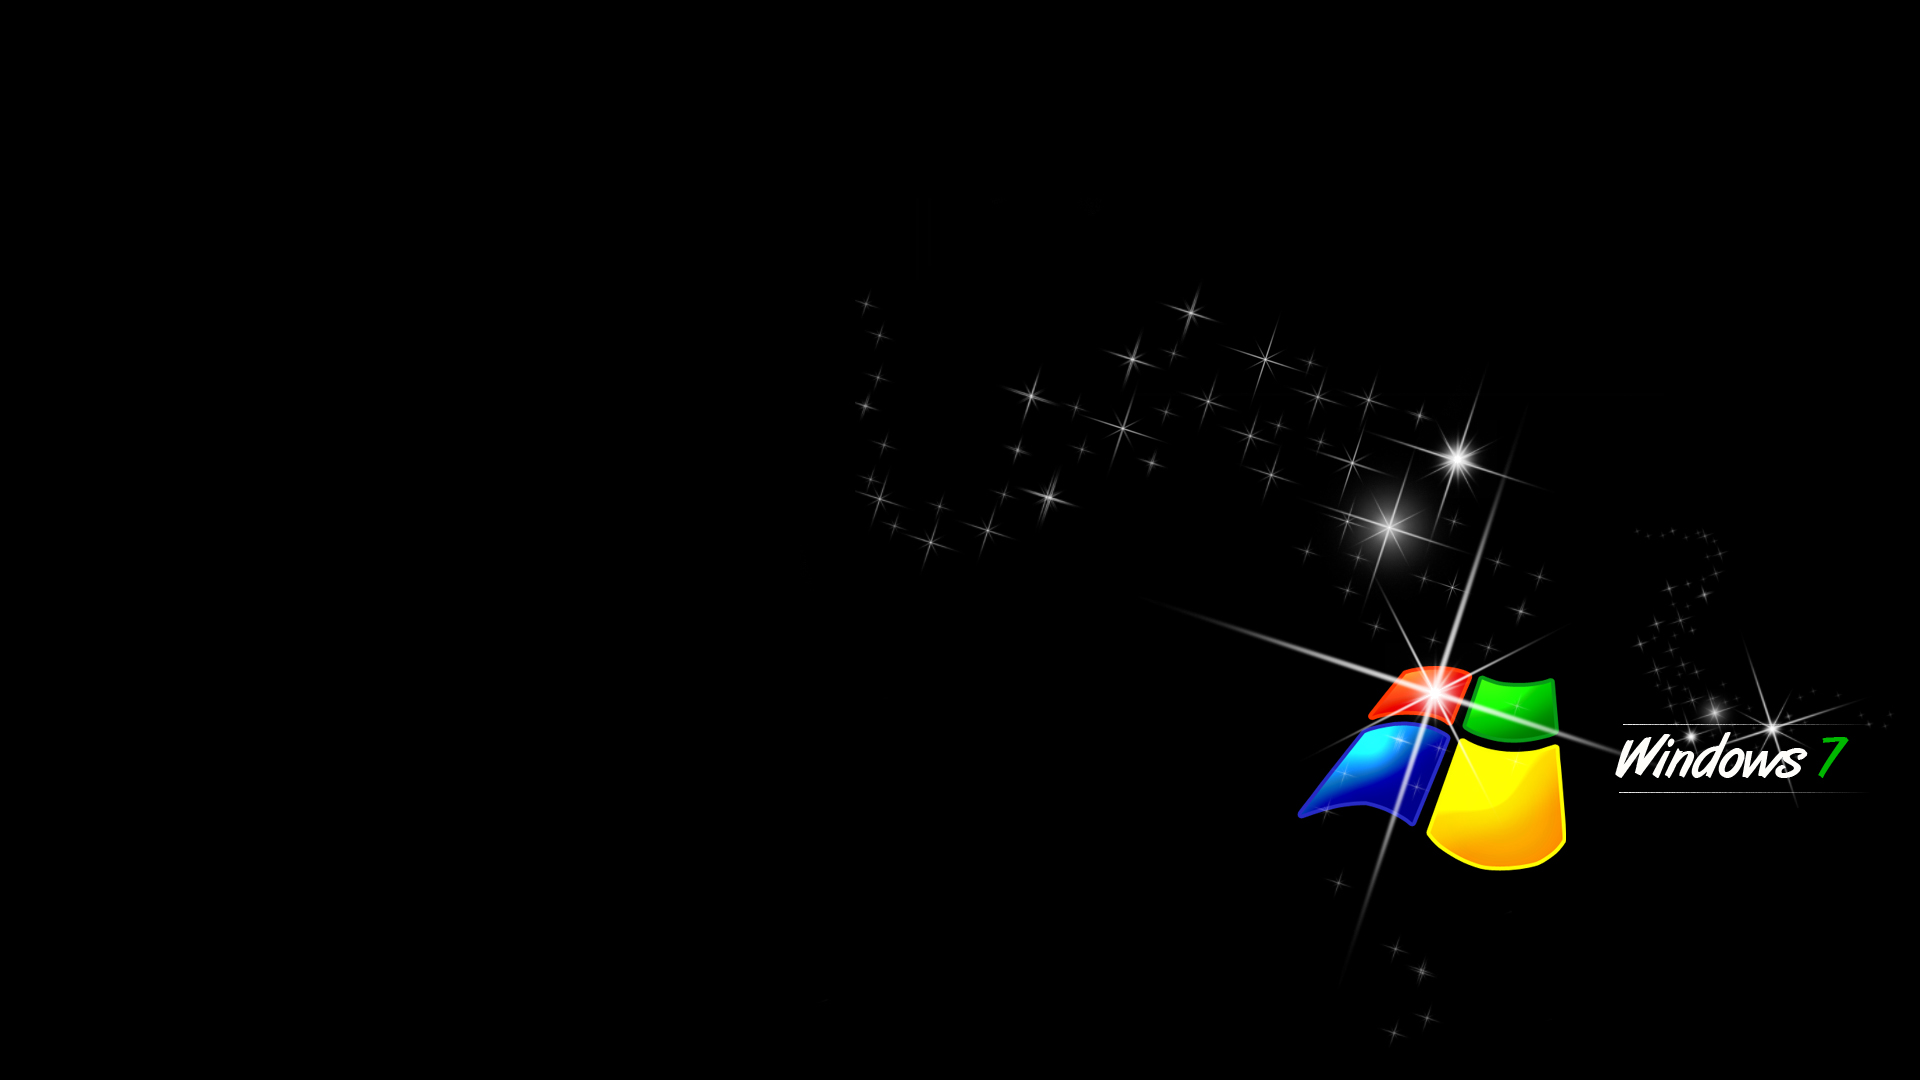 Windows 7 With Black Background HD Wallpaper